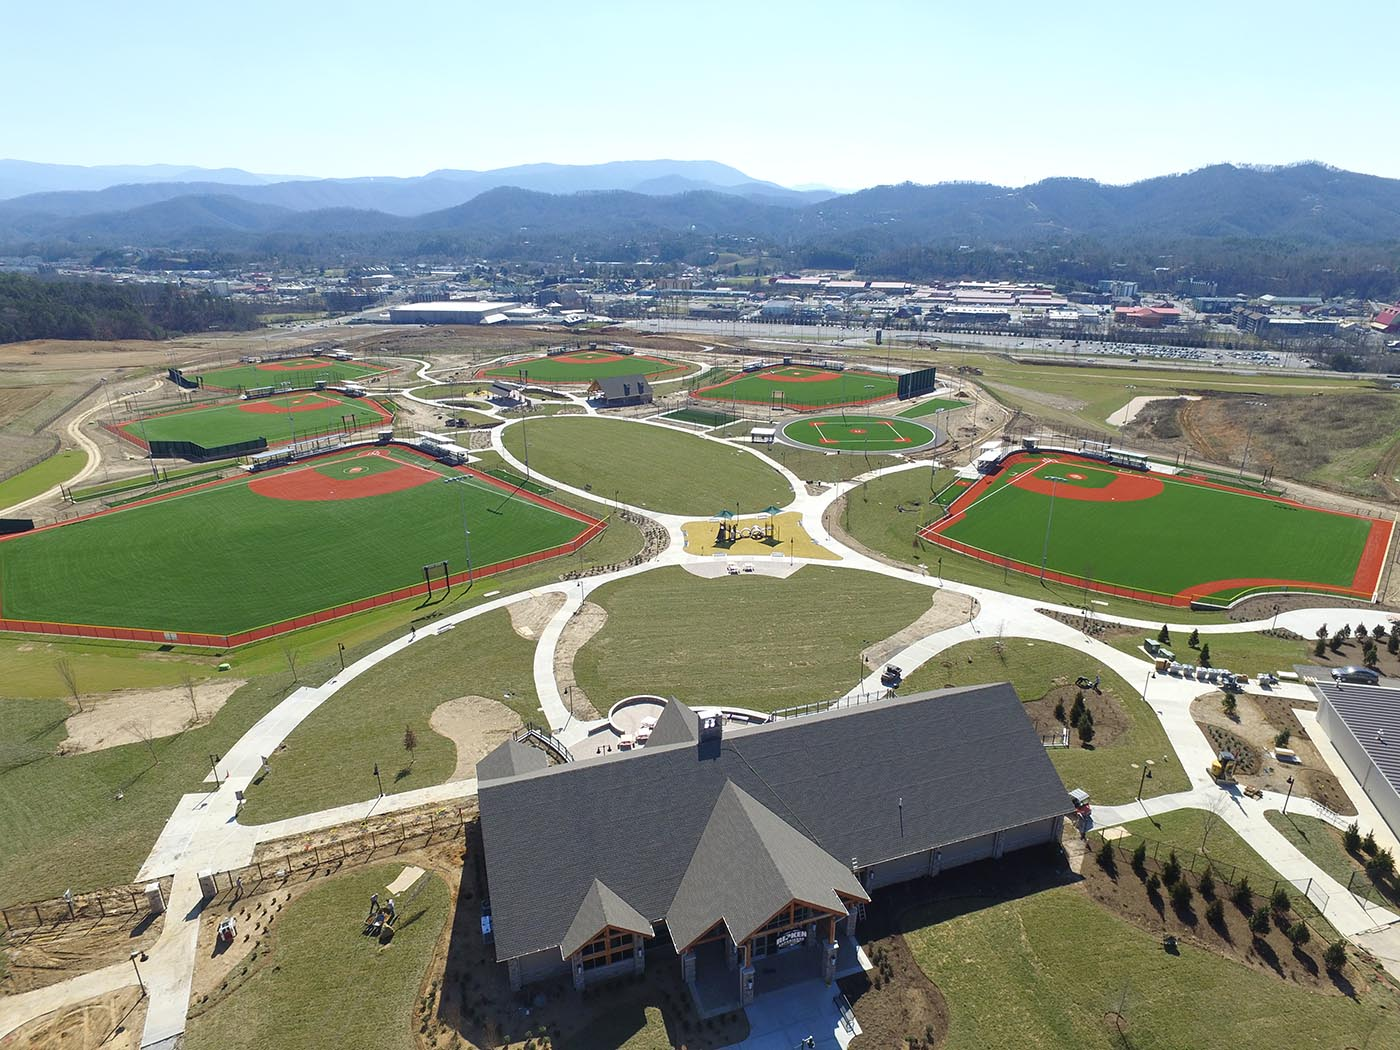 march events in pigeon forge